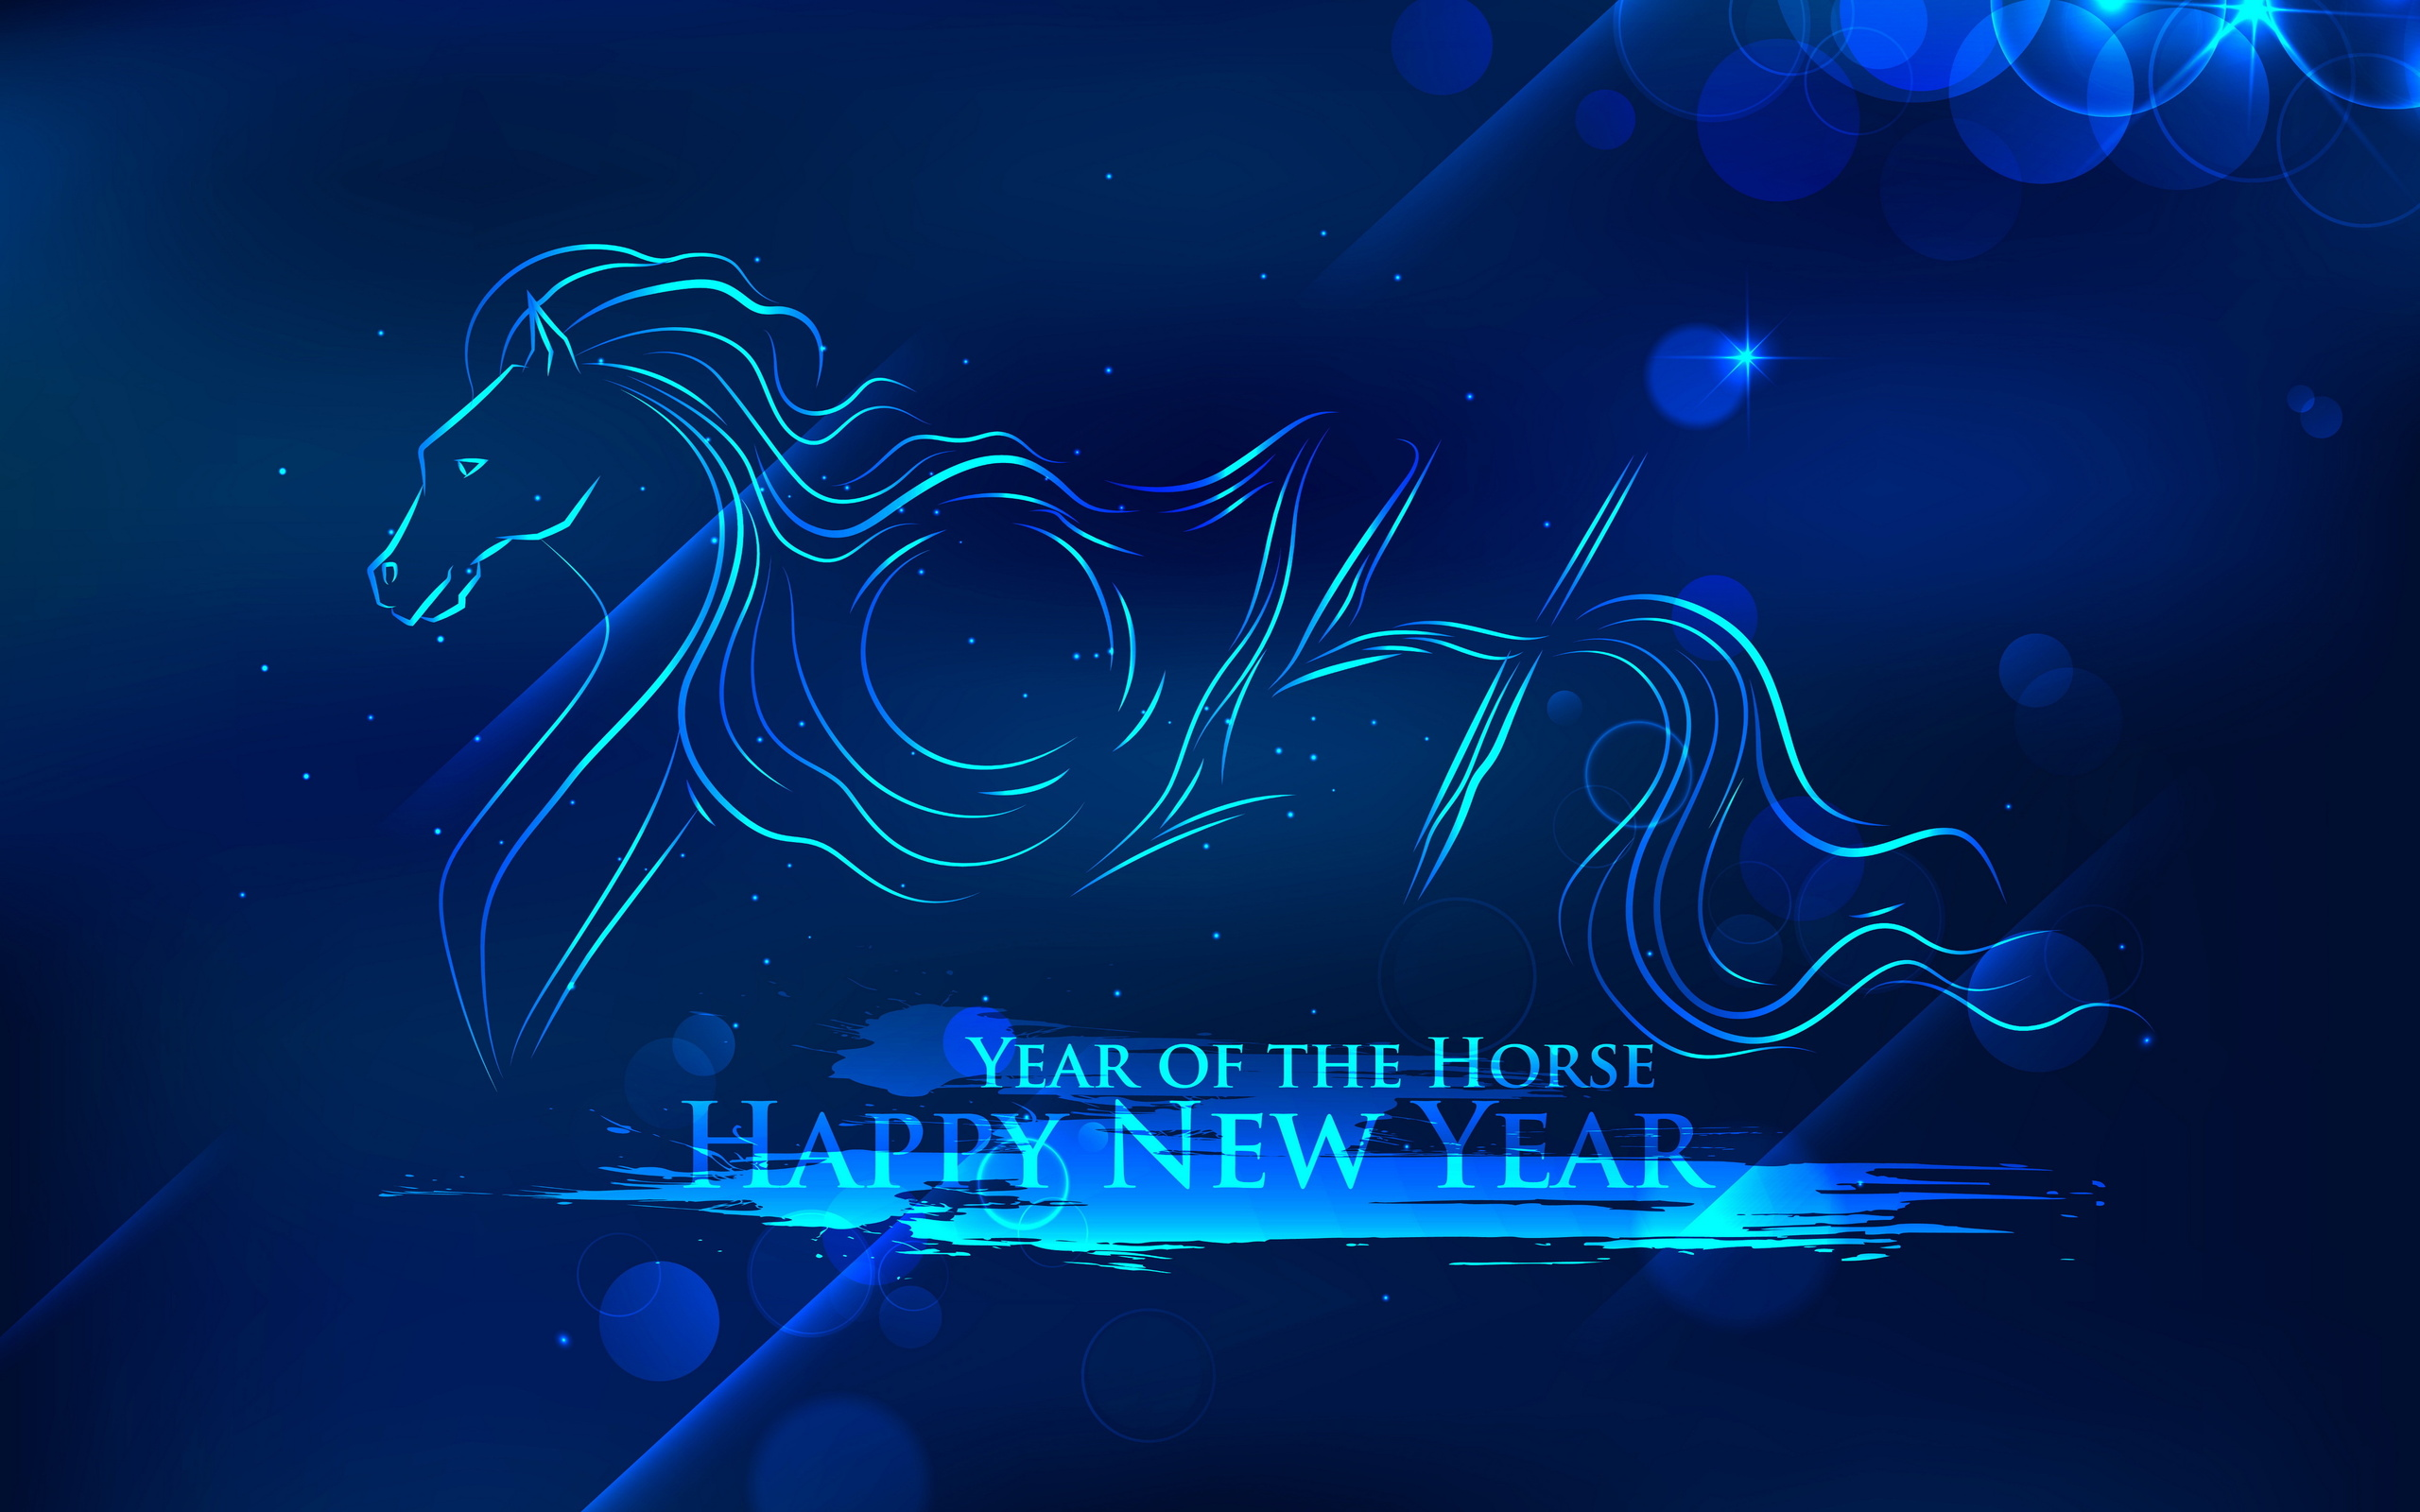 new year 2014 year of the horse     hf